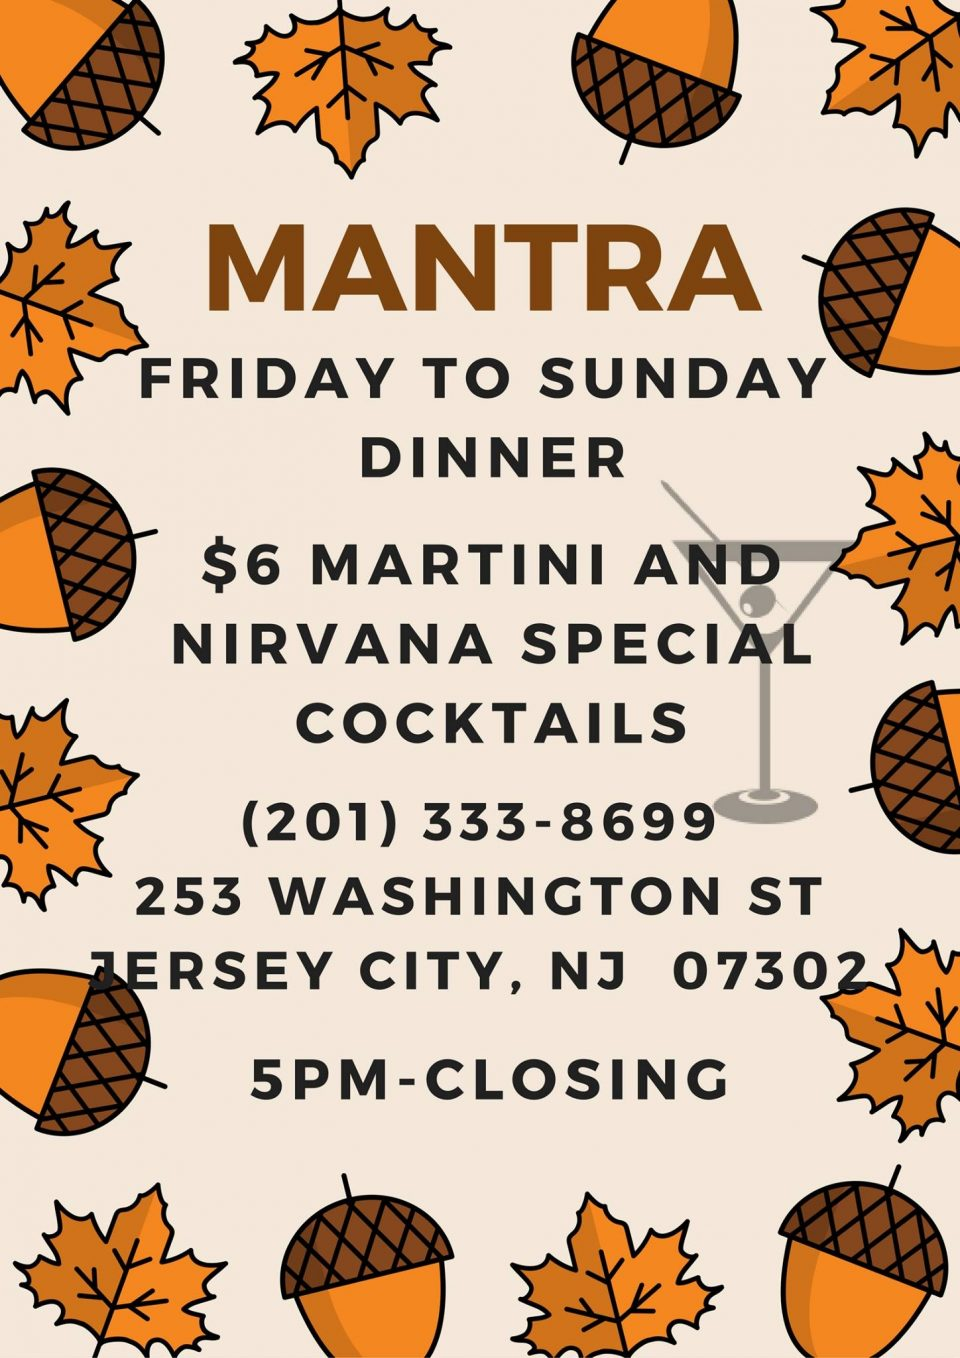 Mantra Restaurant Facebook